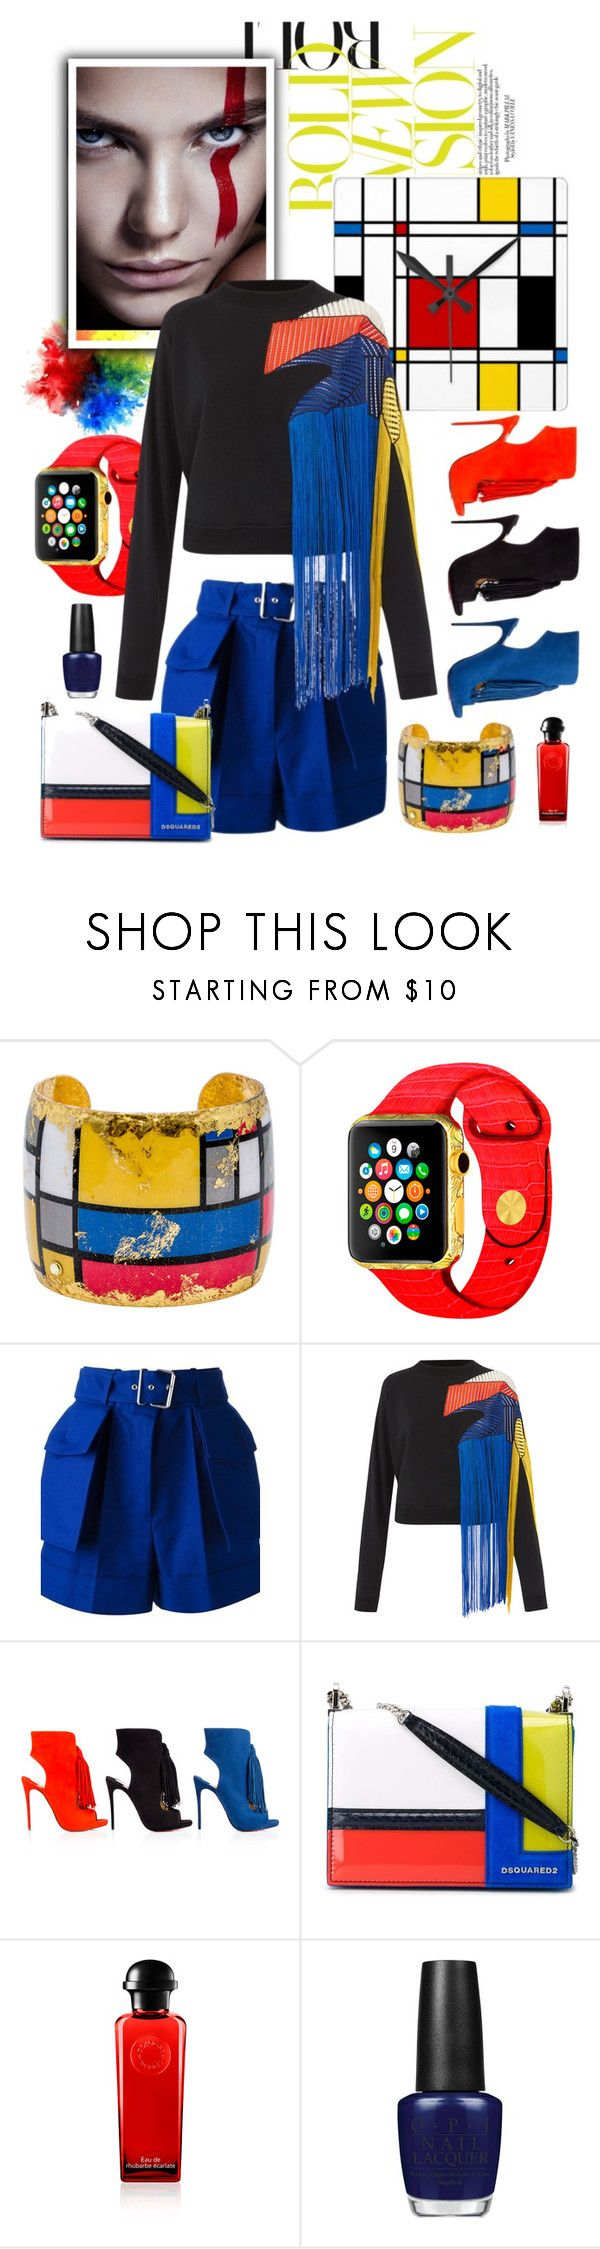 """""""Mondrian Does Fringe"""" by felicia-mcdonnell ❤ liked on Polyvore featuring Karen Millen, Évocateur, Alexander McQueen, Christopher Kane, Christian Louboutin, Dsquared2 and OPI"""